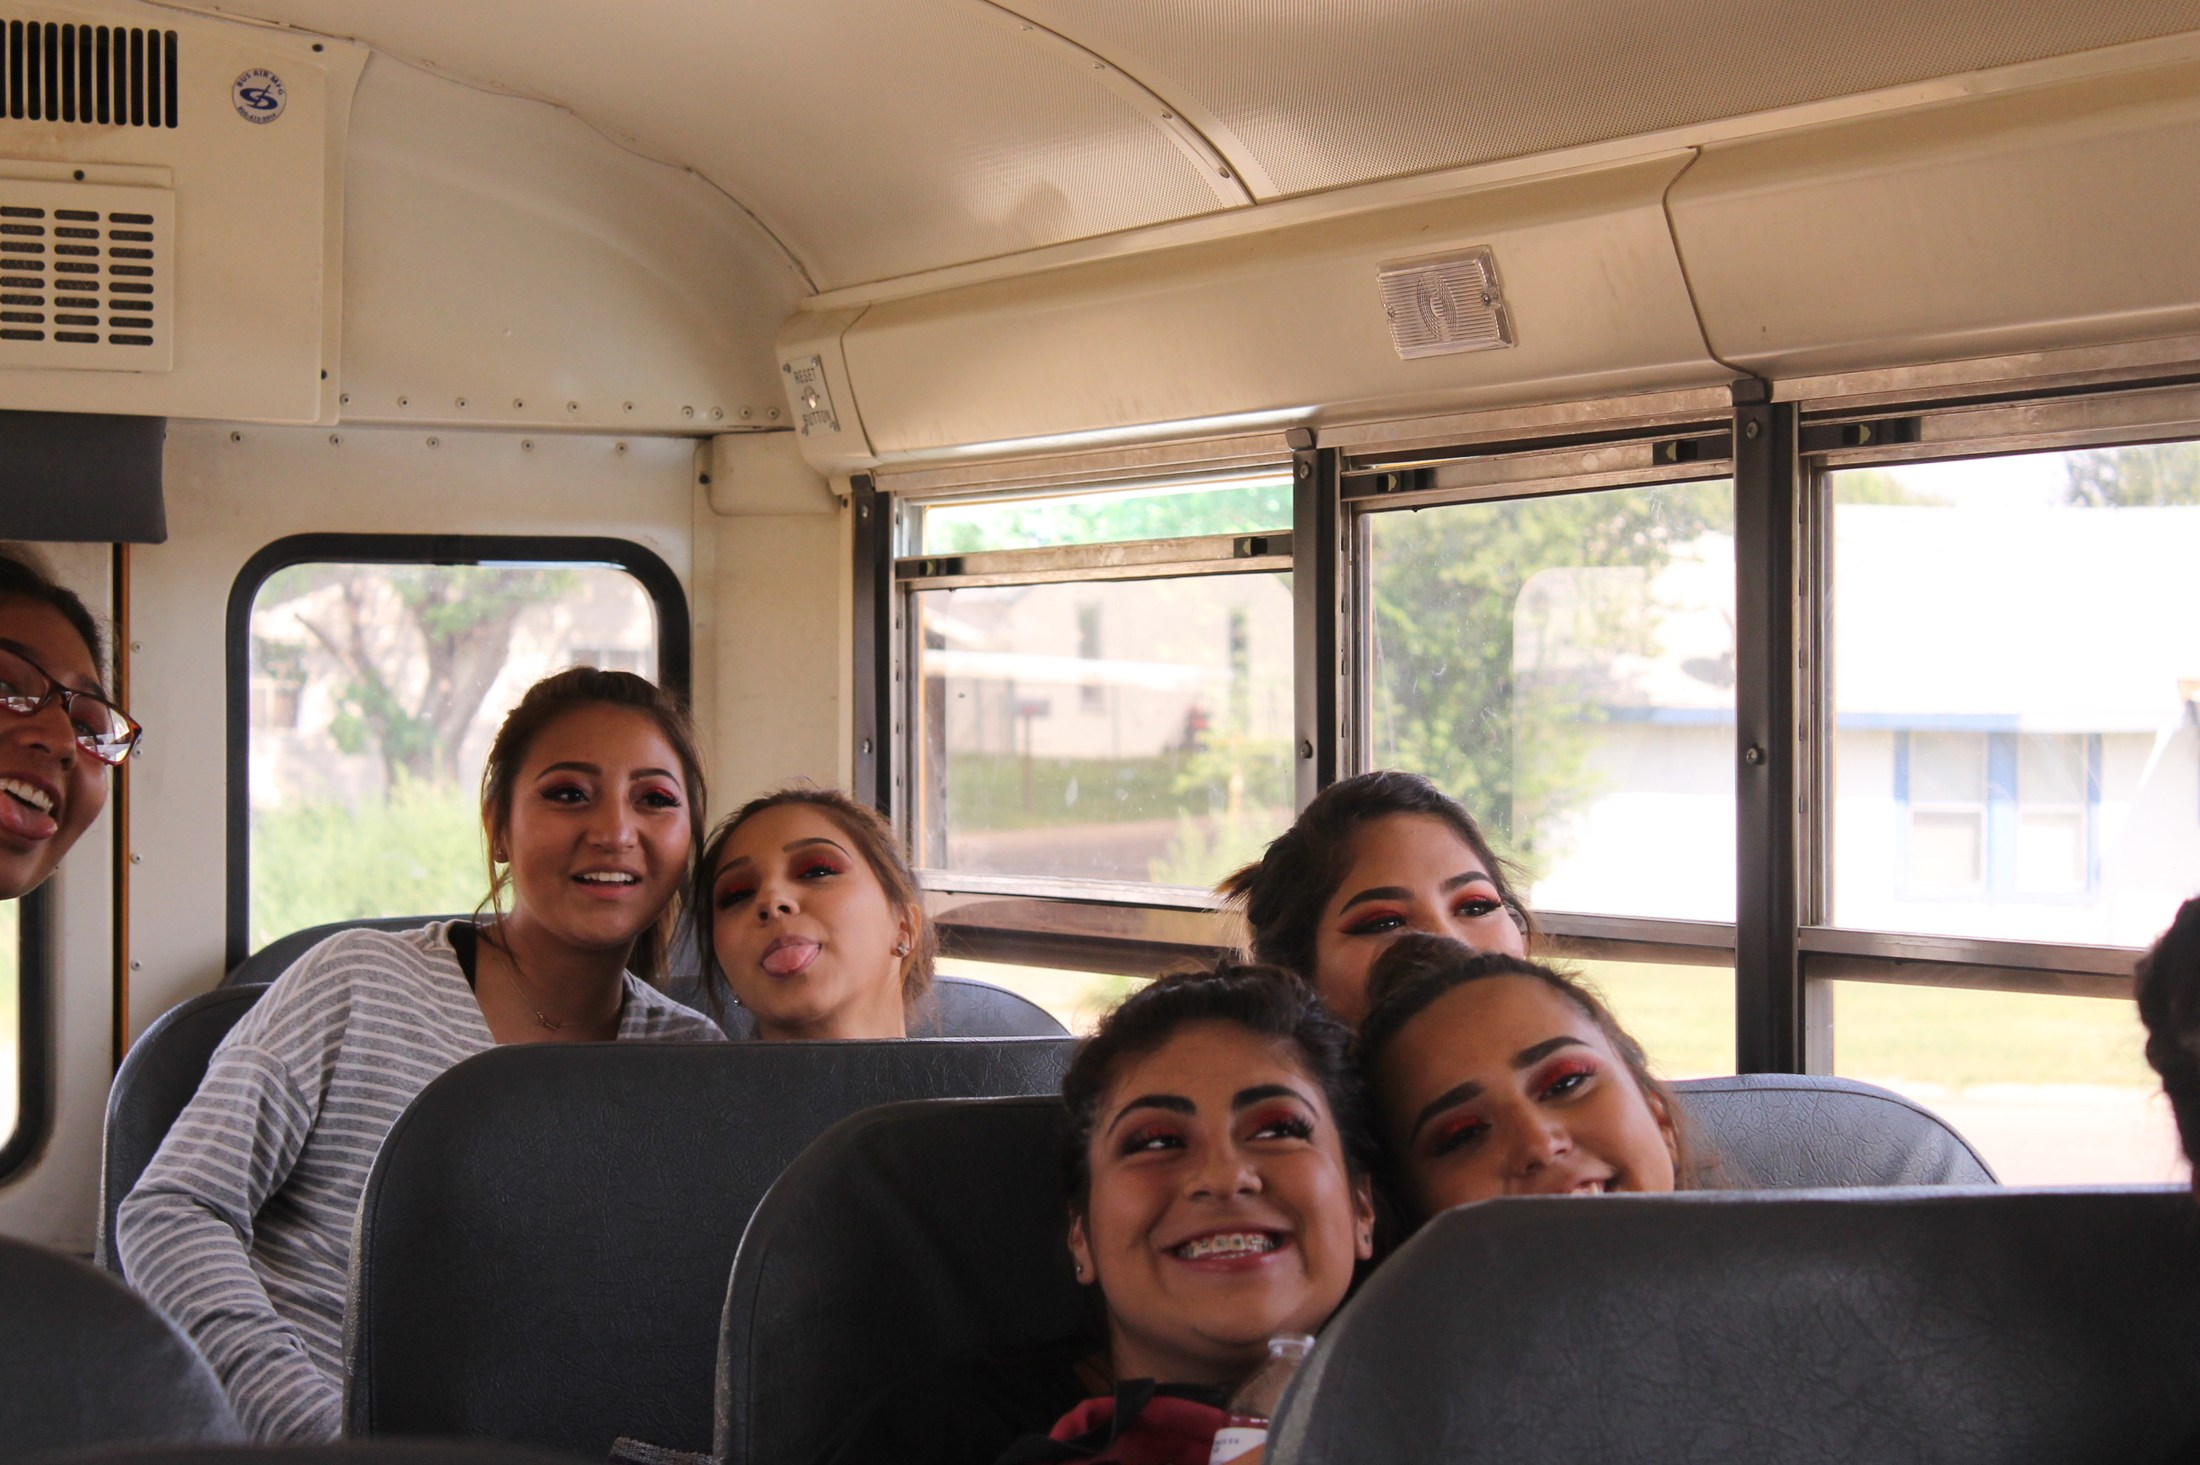 Riding on the bus